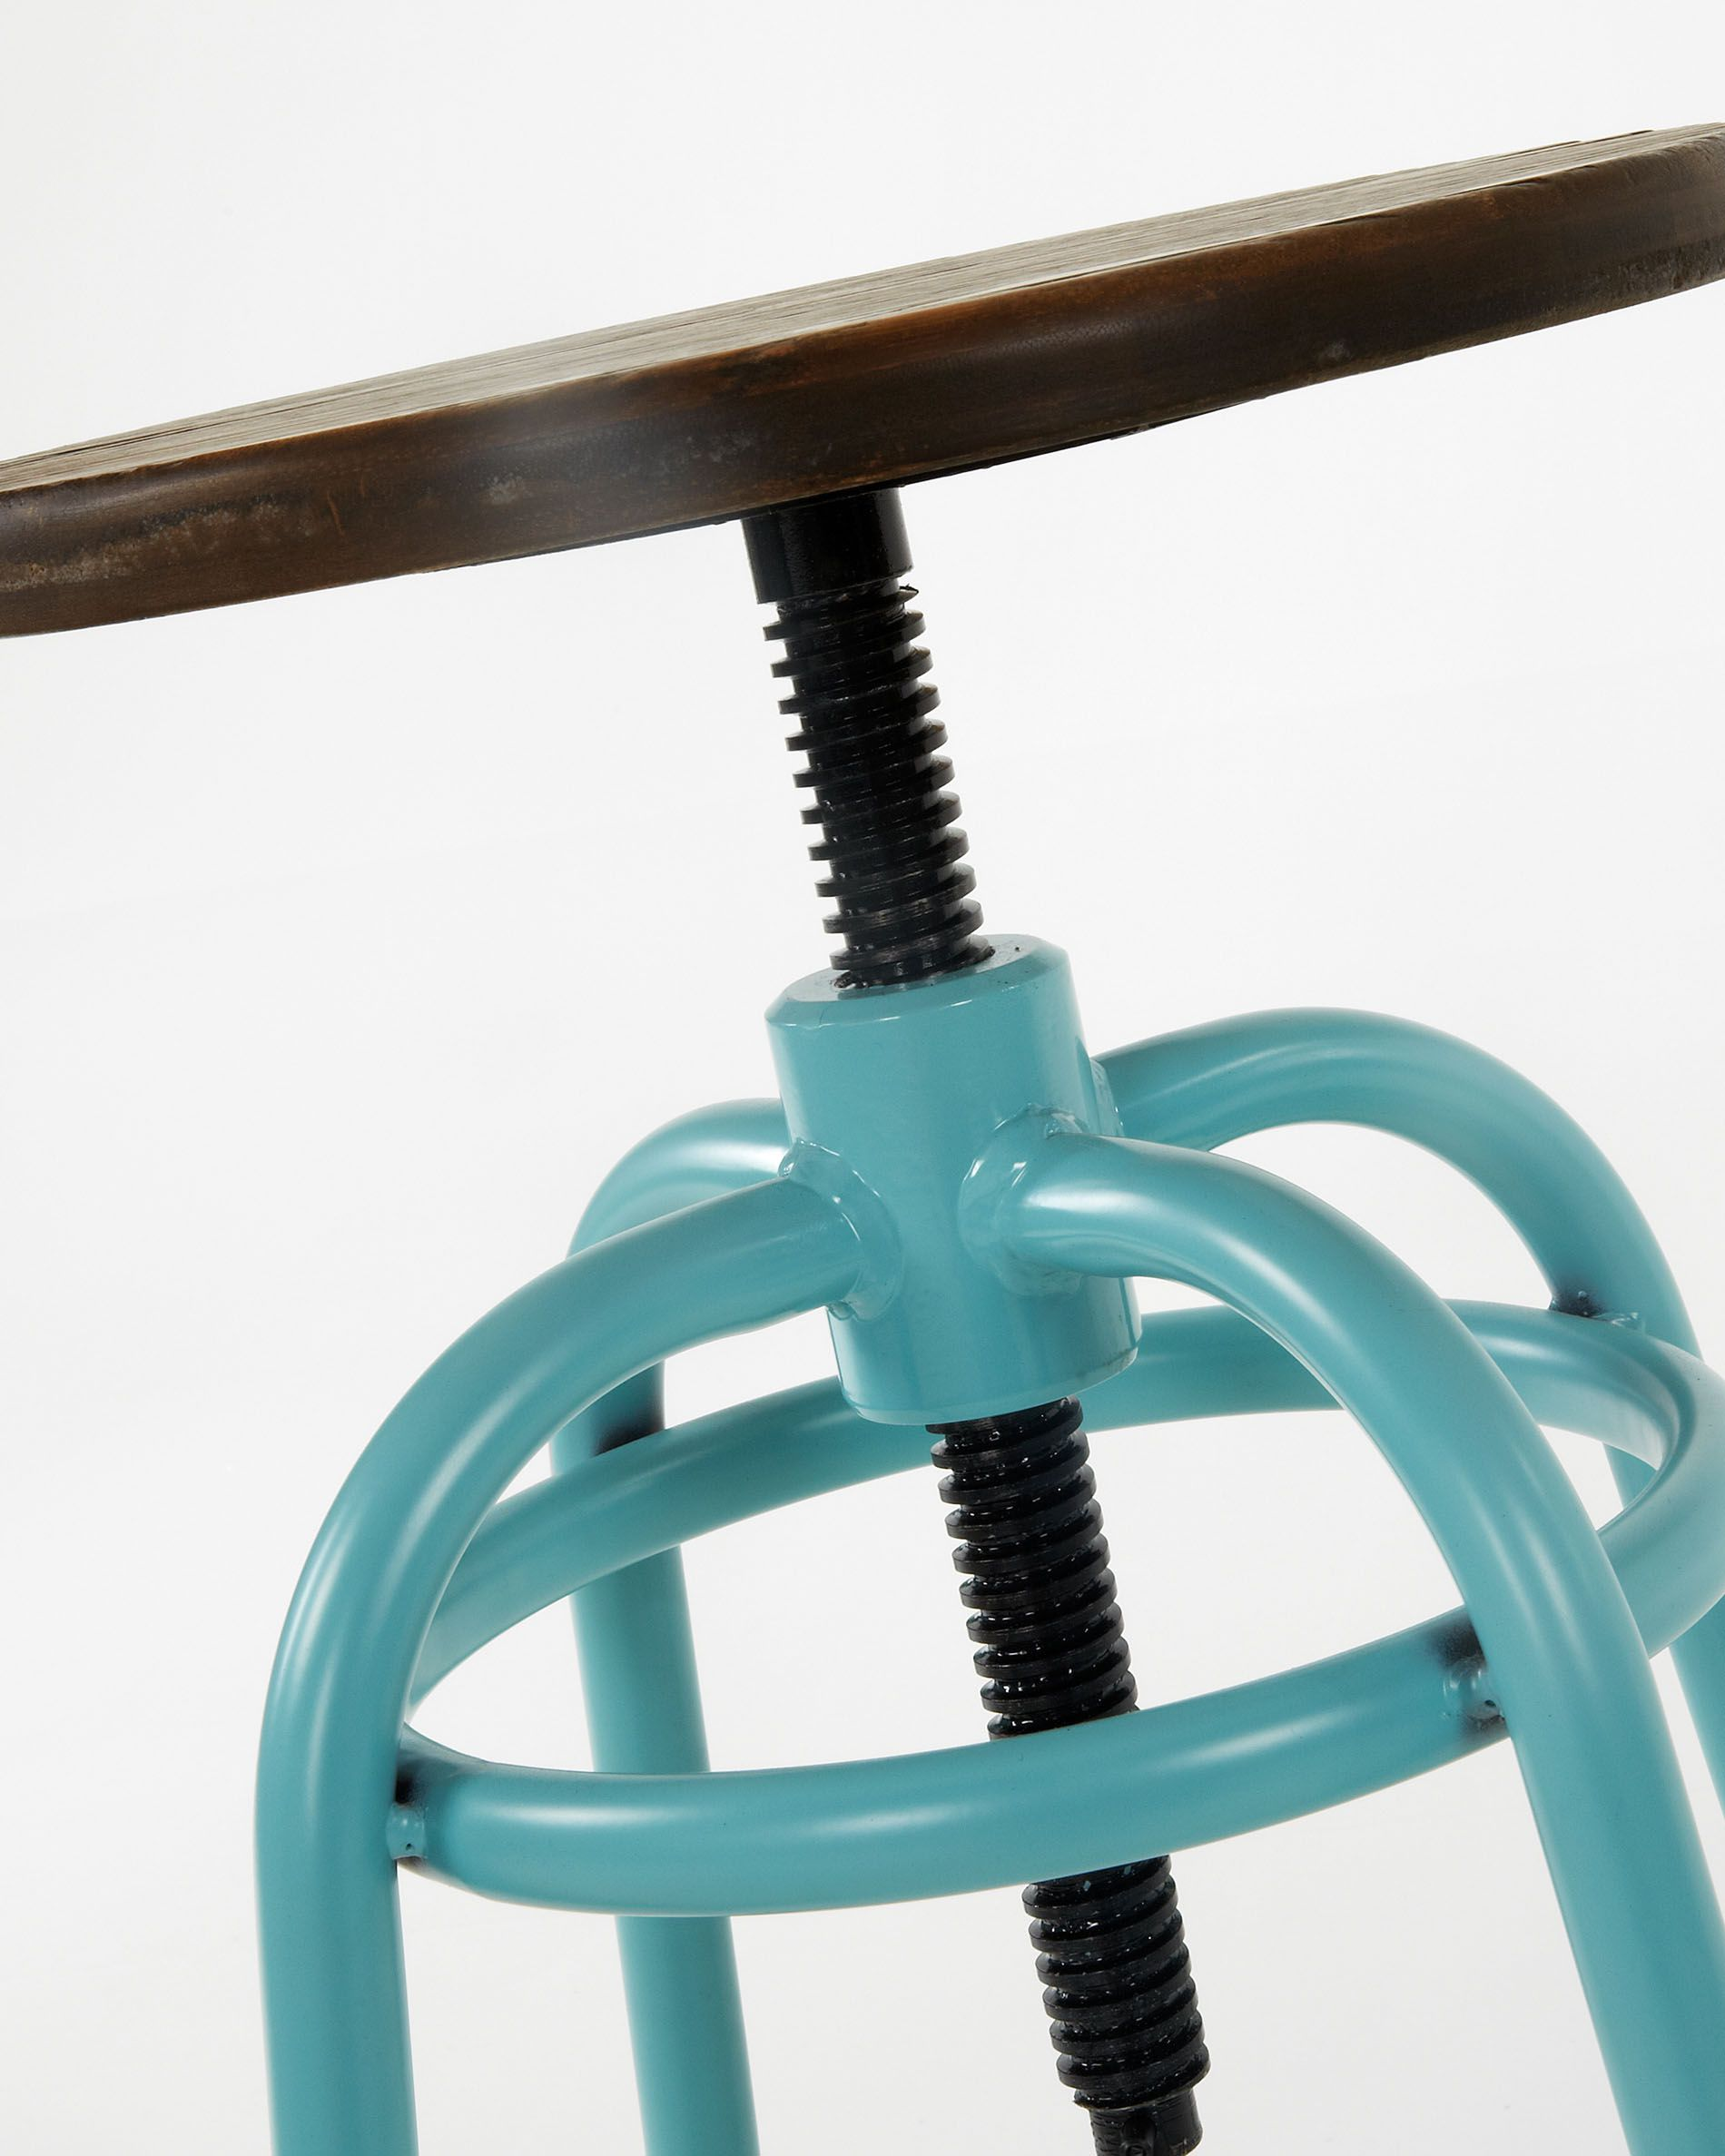 Enjoyable Turquoise Malira Barstool Height 66 84 Cm Kave Home Caraccident5 Cool Chair Designs And Ideas Caraccident5Info